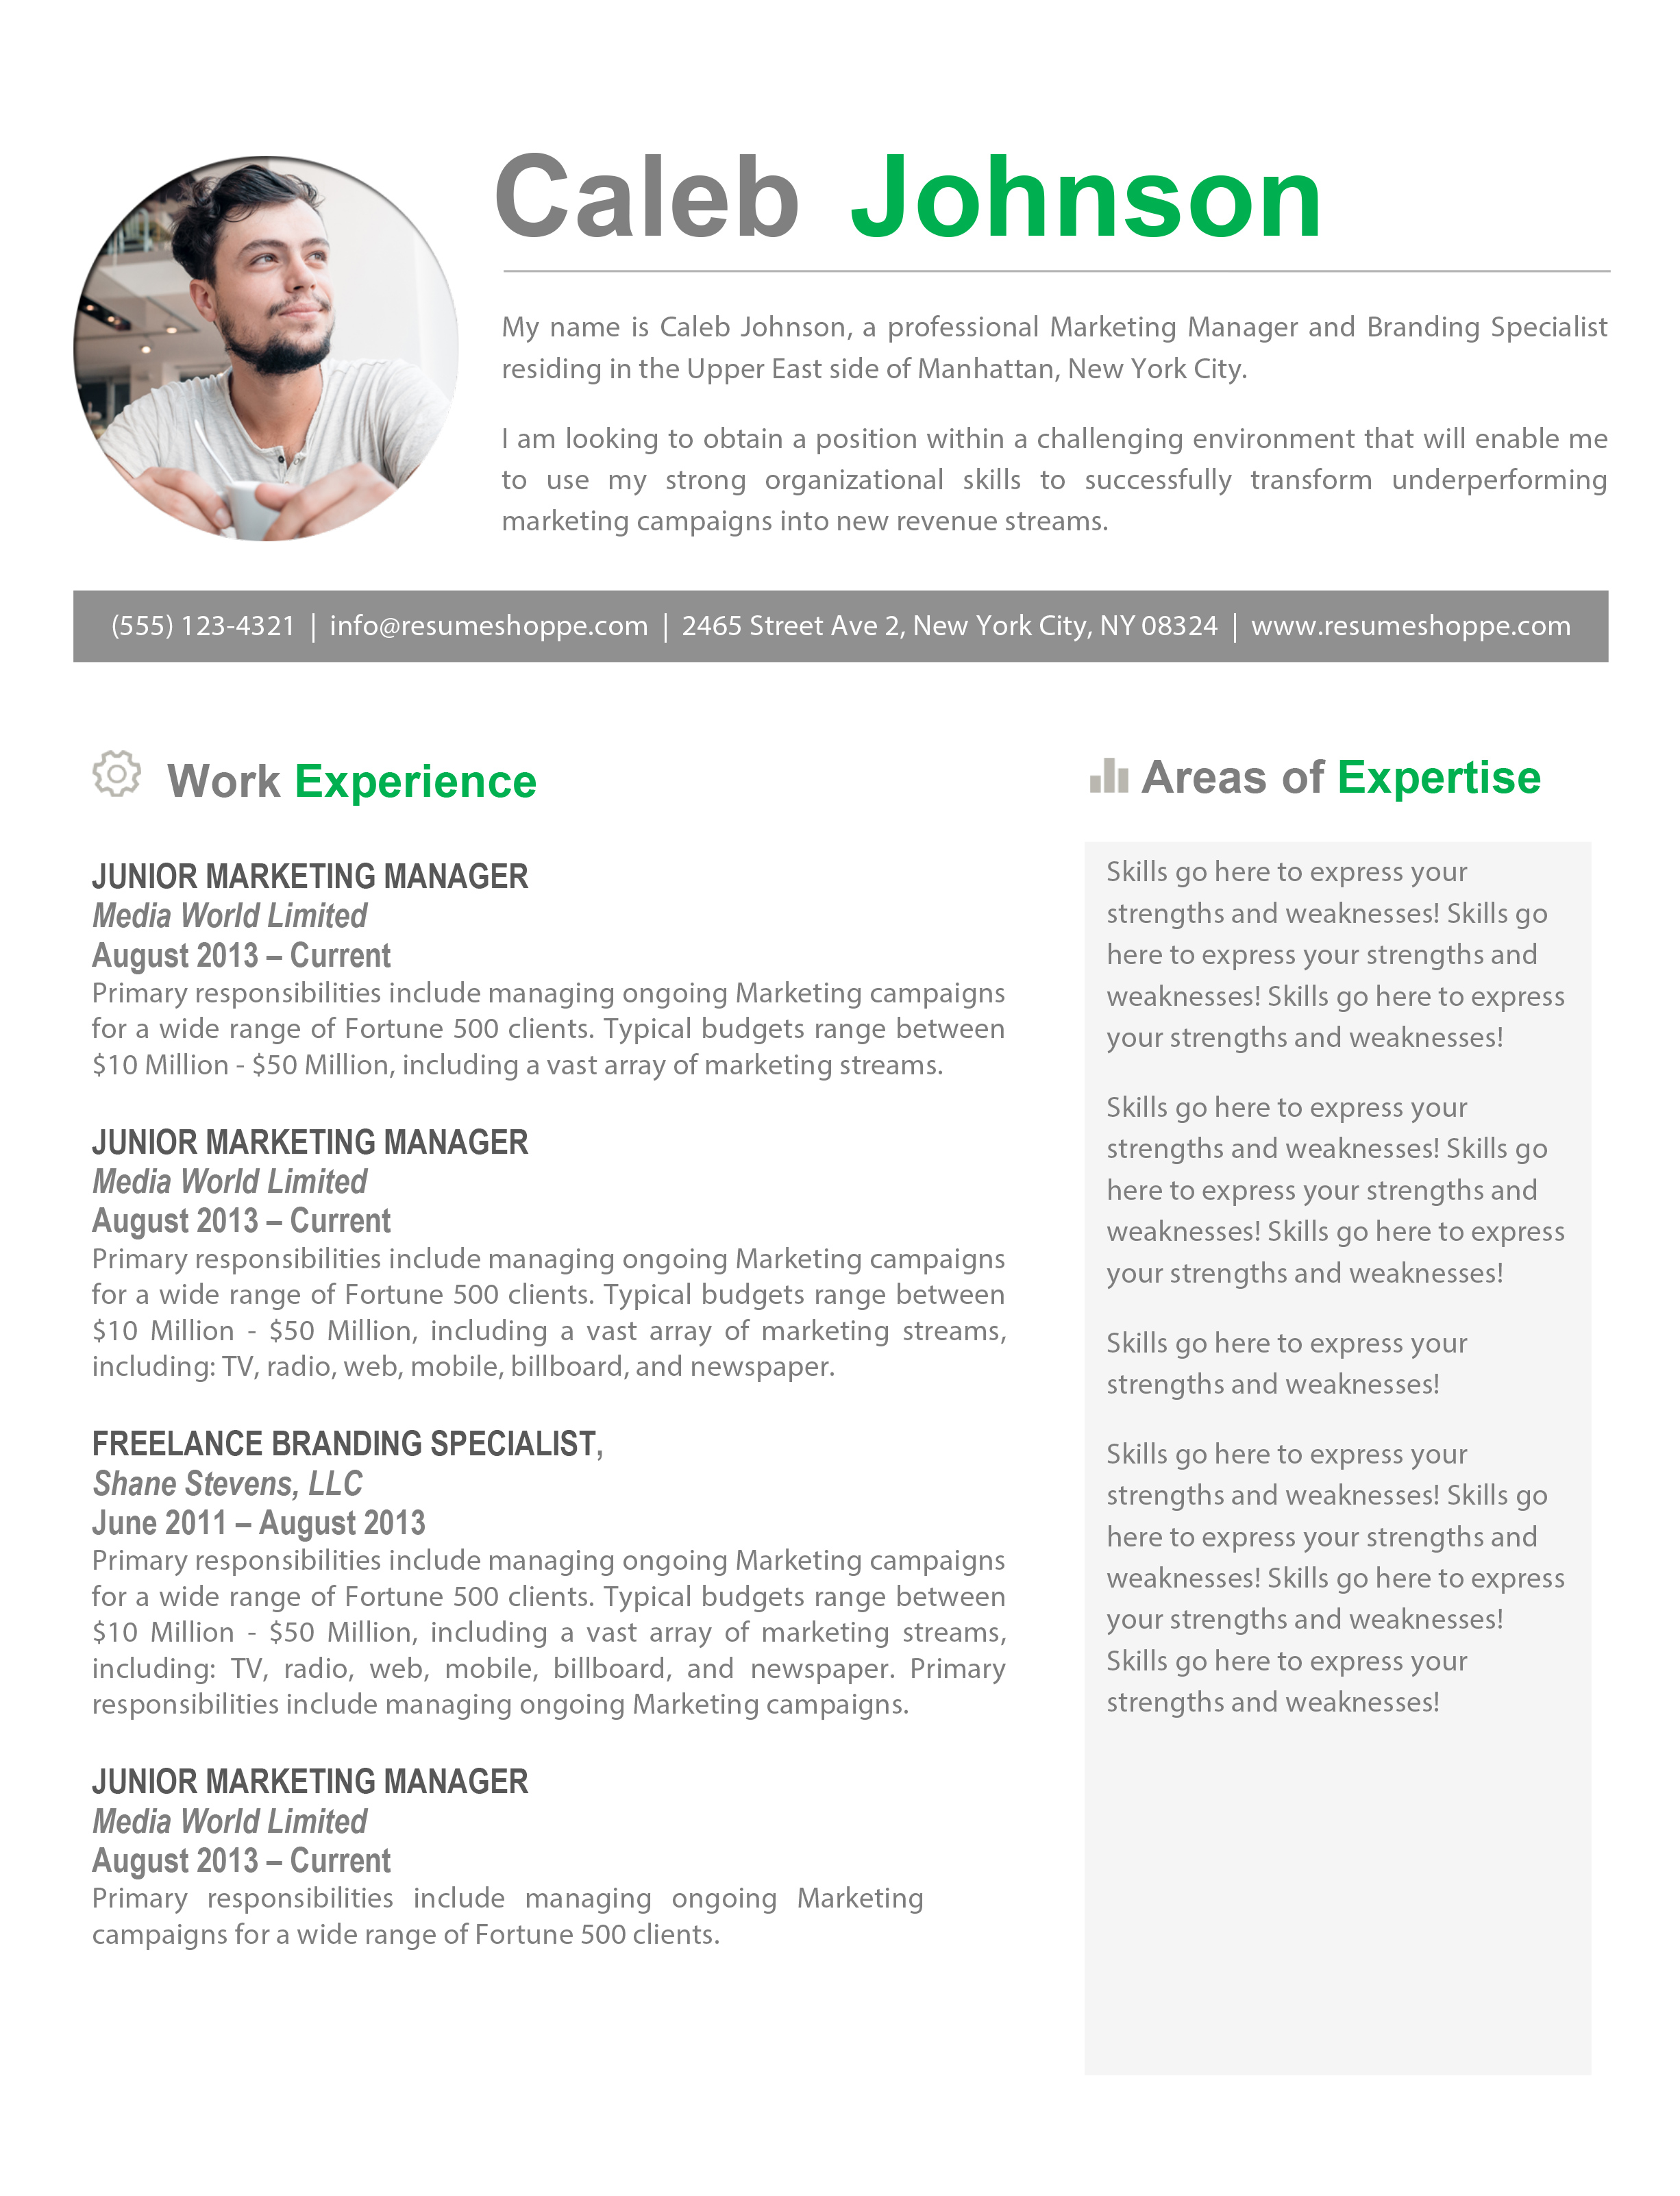 resume templates for mac also apple pages ready the caleb resume 1